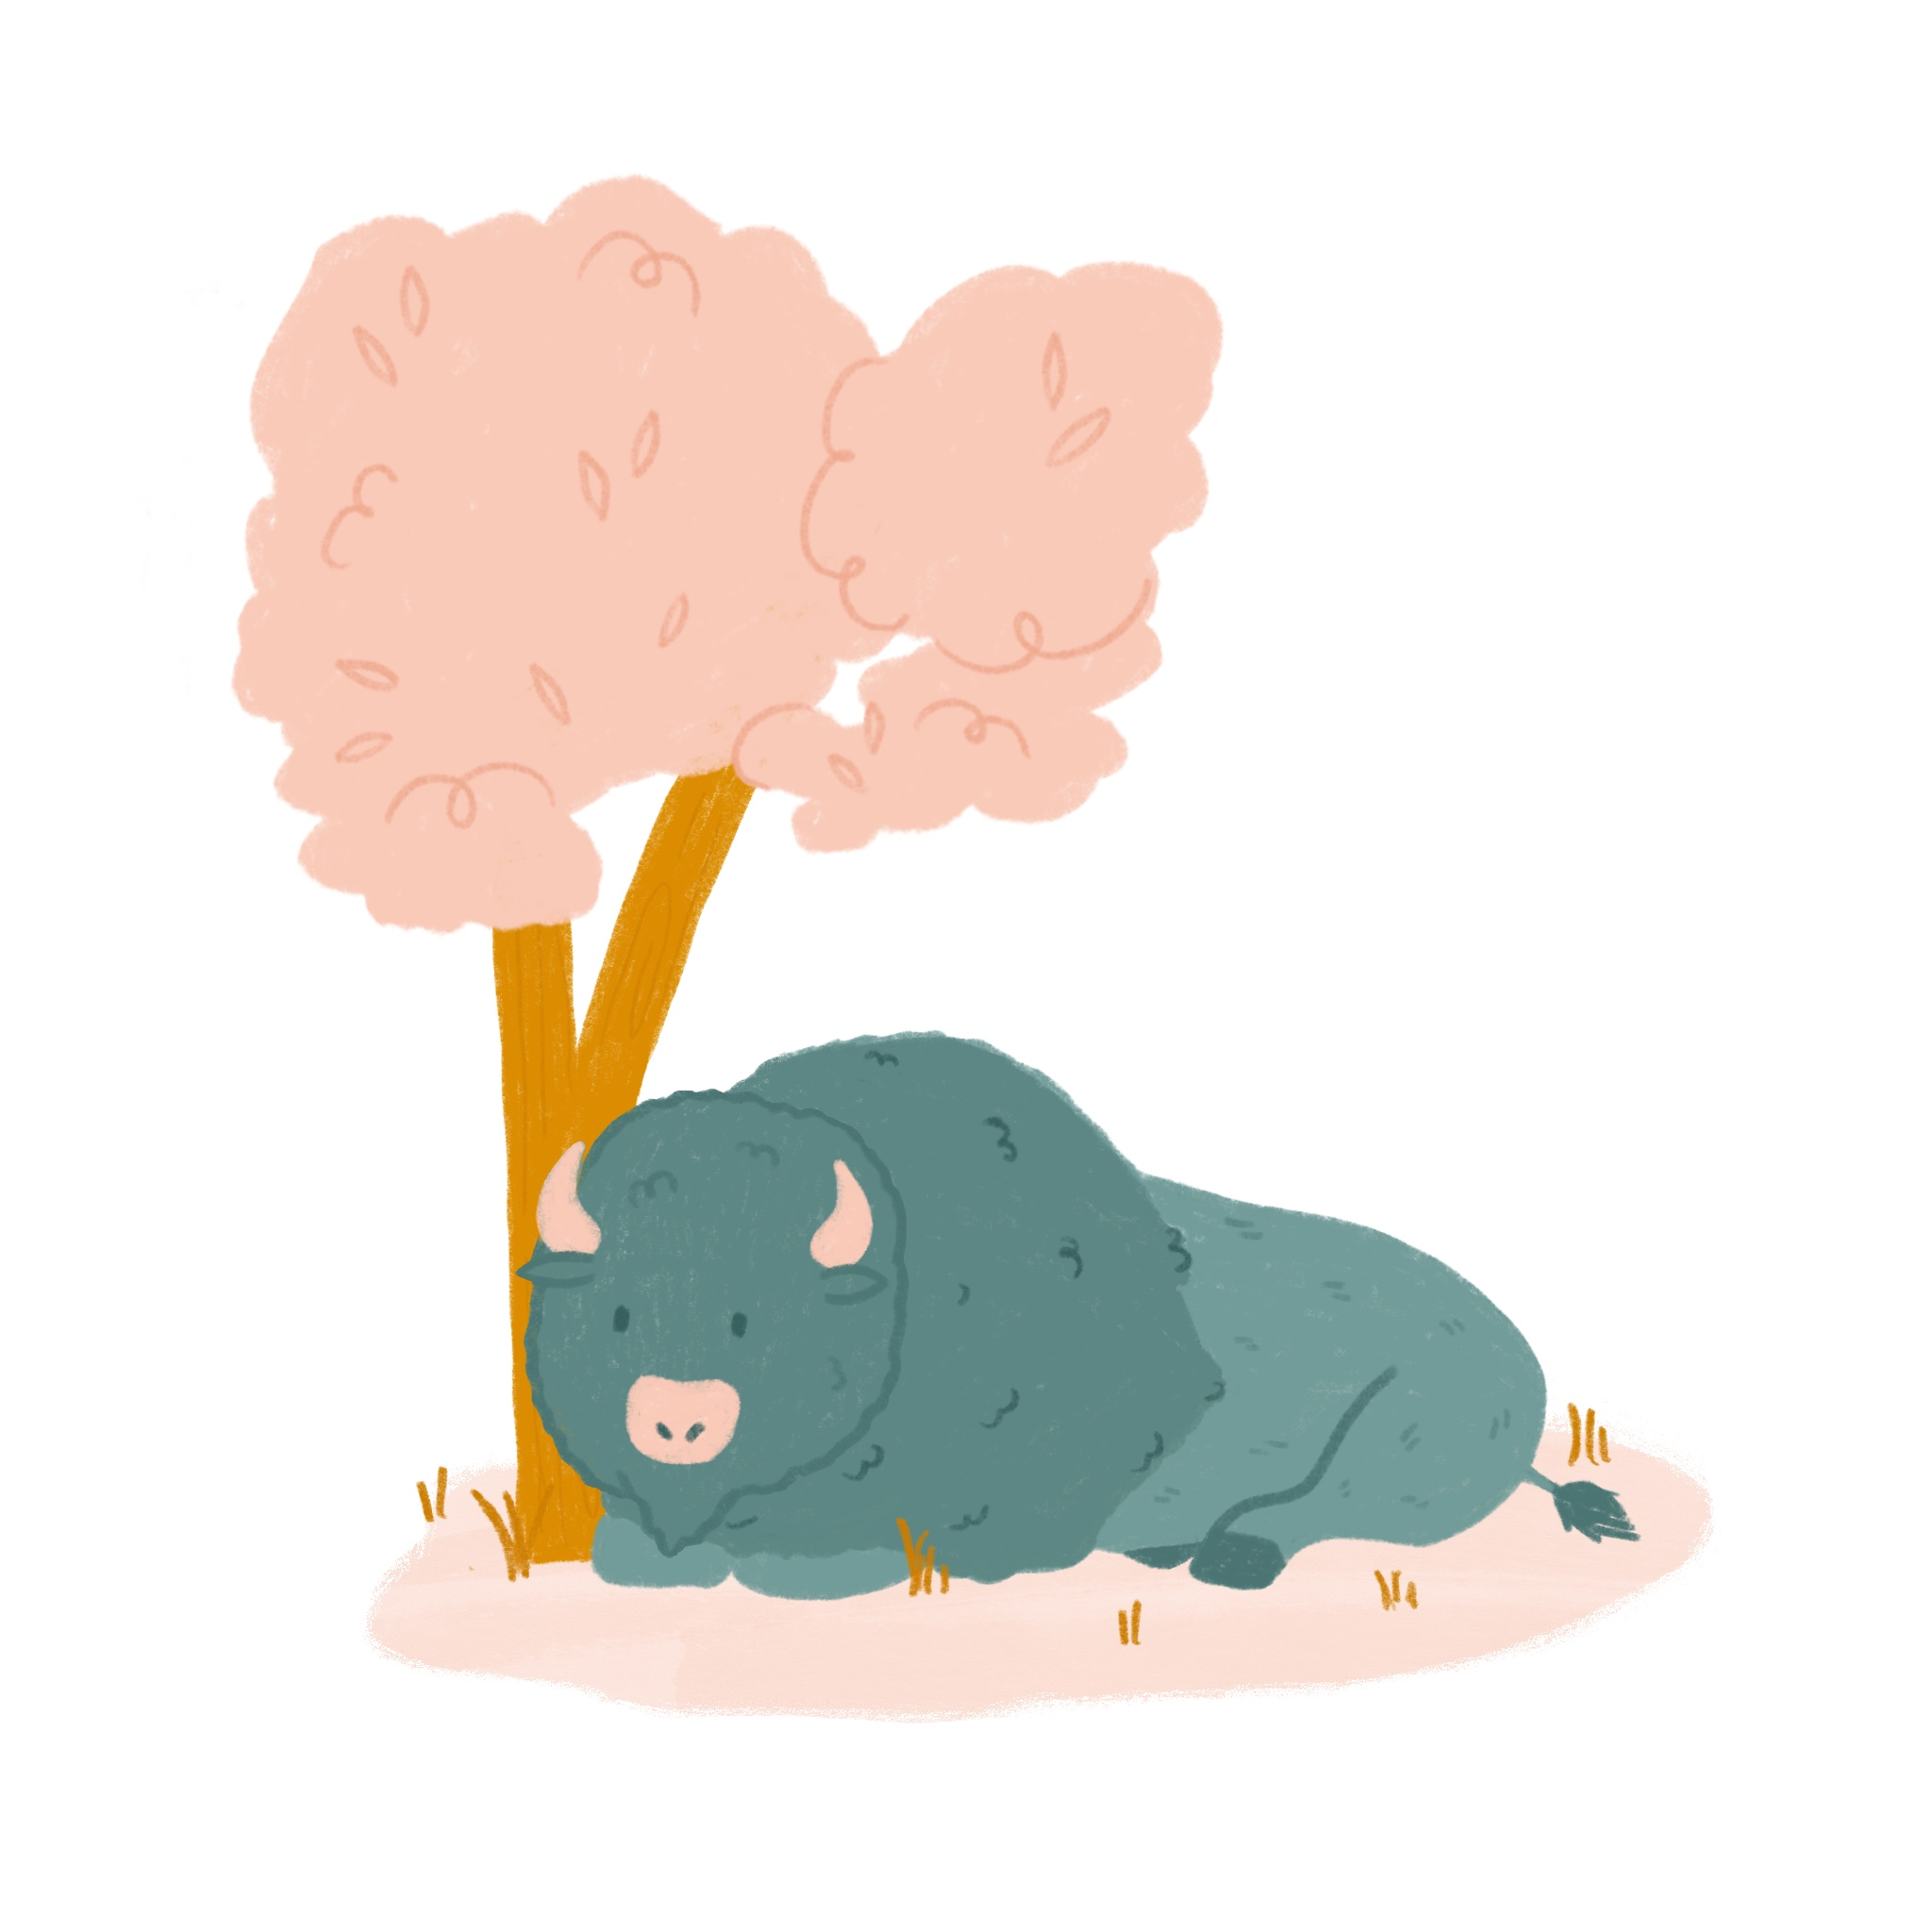 An illustration of a Bison resting under a tree